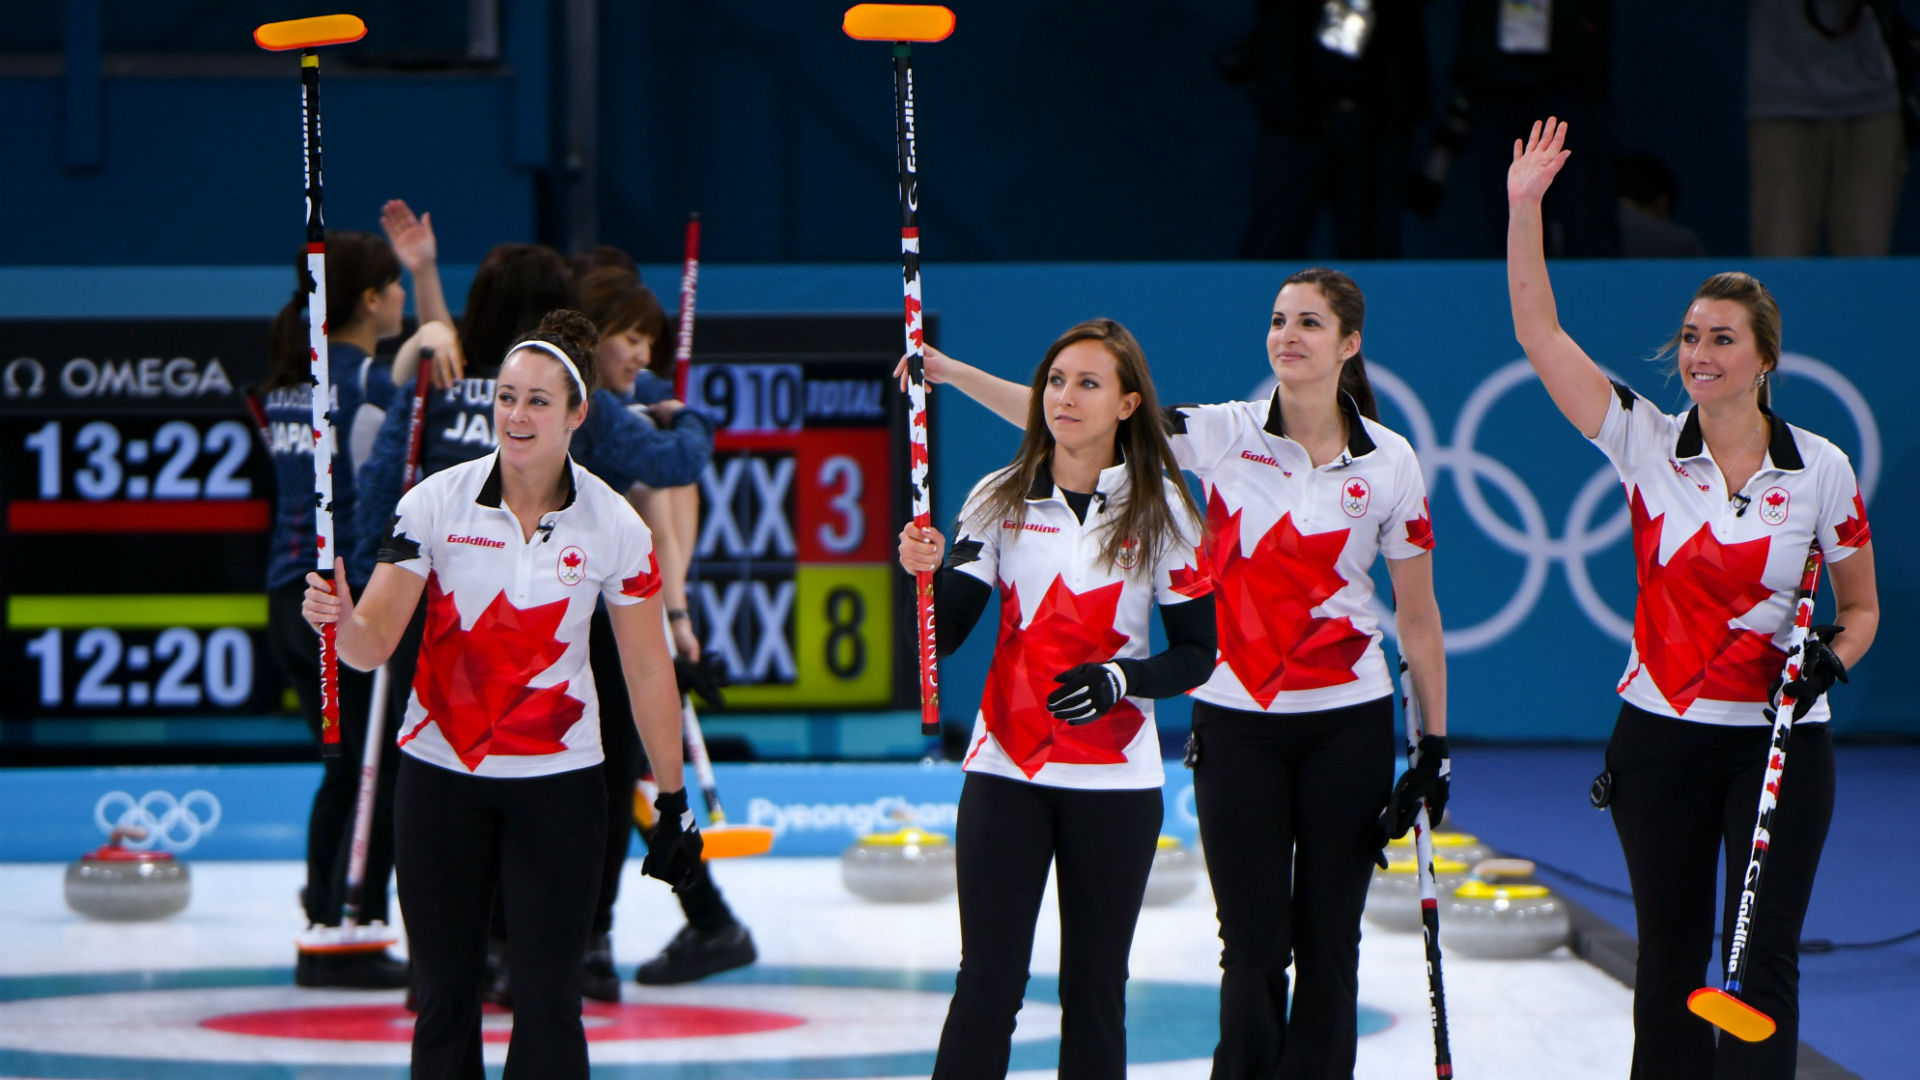 Canada's Rachel Homan Loses Her Curling Match To Britain, Won't Make Podium